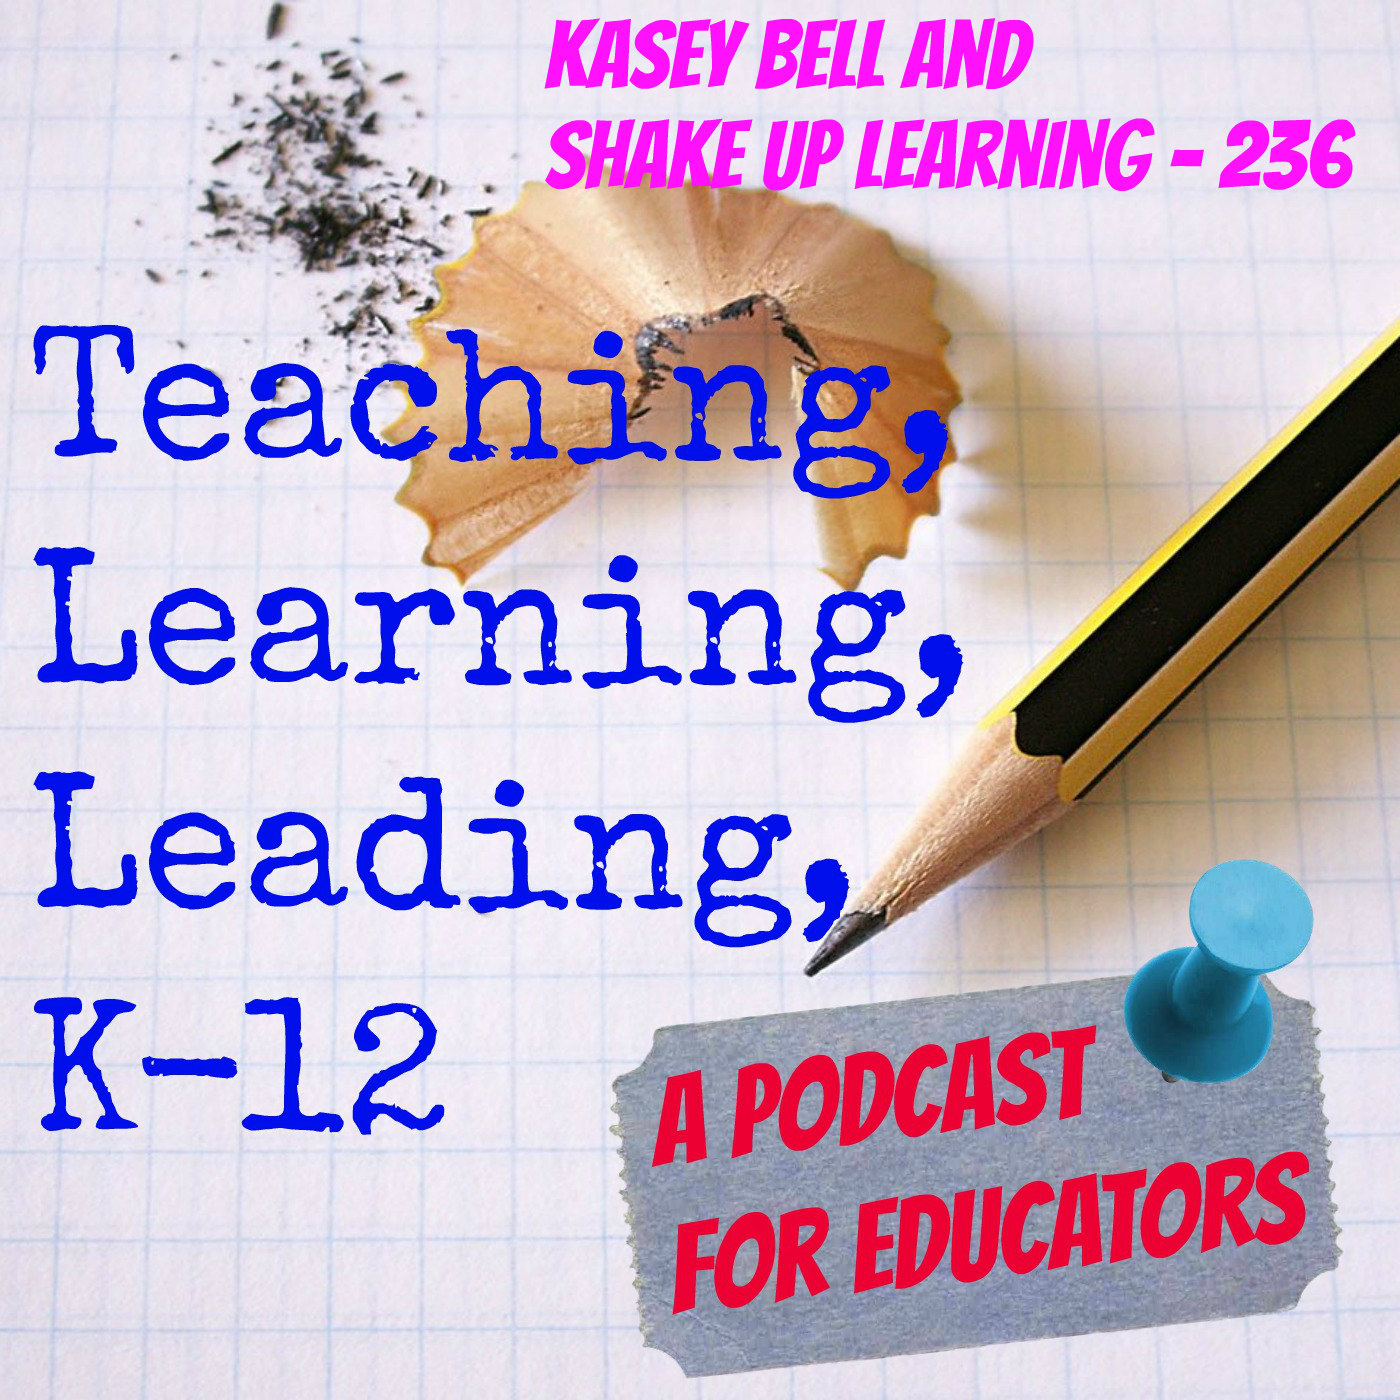 Kasey Bell and Shake Up Learning - 236